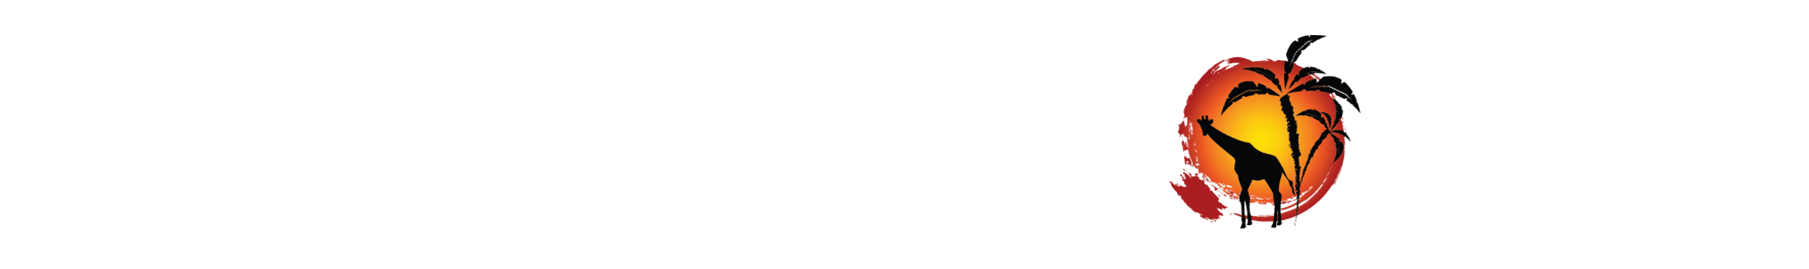 ect south africa specialists atol satsa bonded